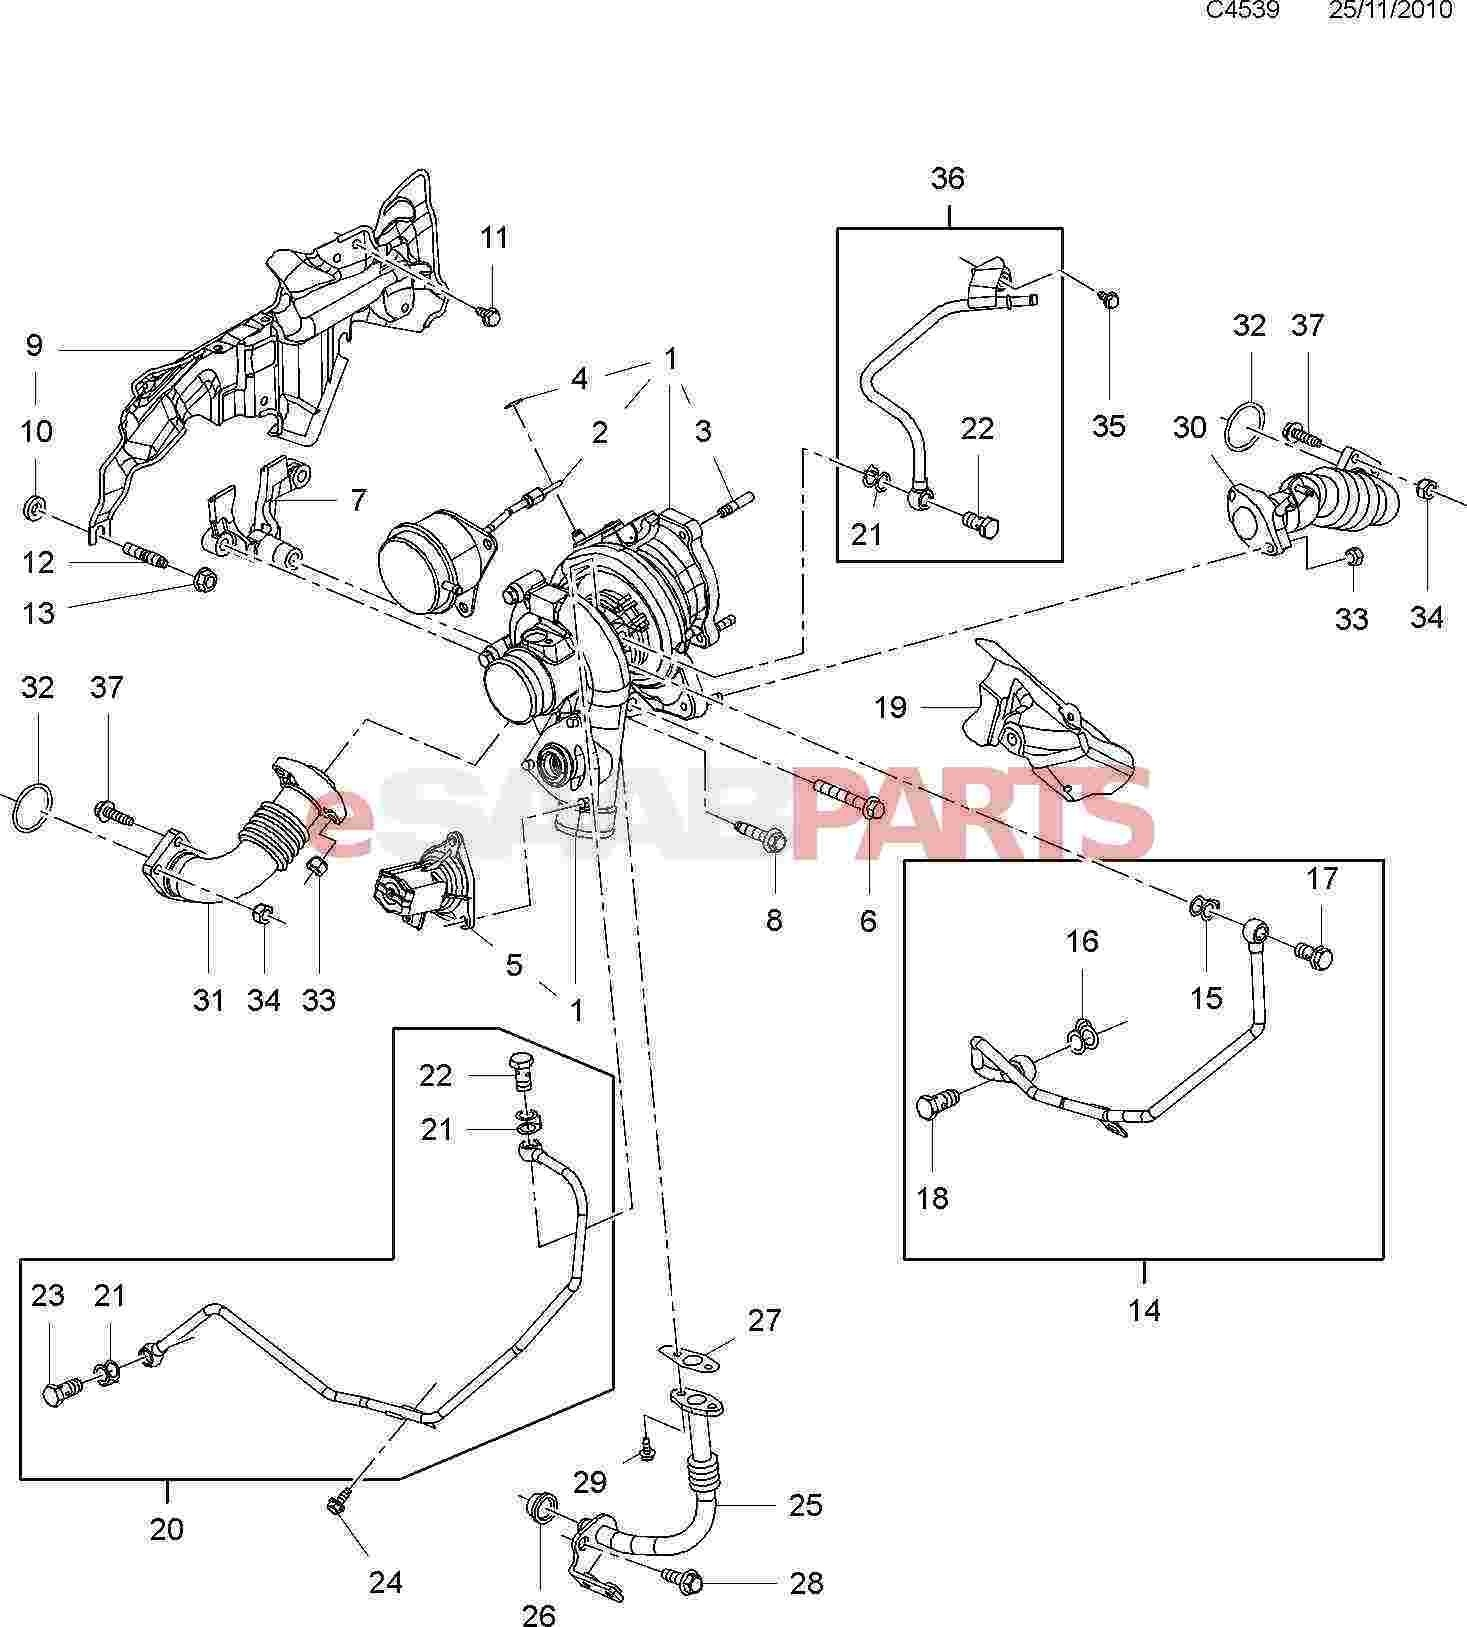 ford 2 9l engine diagram electrical drawing wiring diagram u2022 rh g news co 2005 Ford Escape Engine Diagram Ford Ranger 2.9 Wiring-Diagram